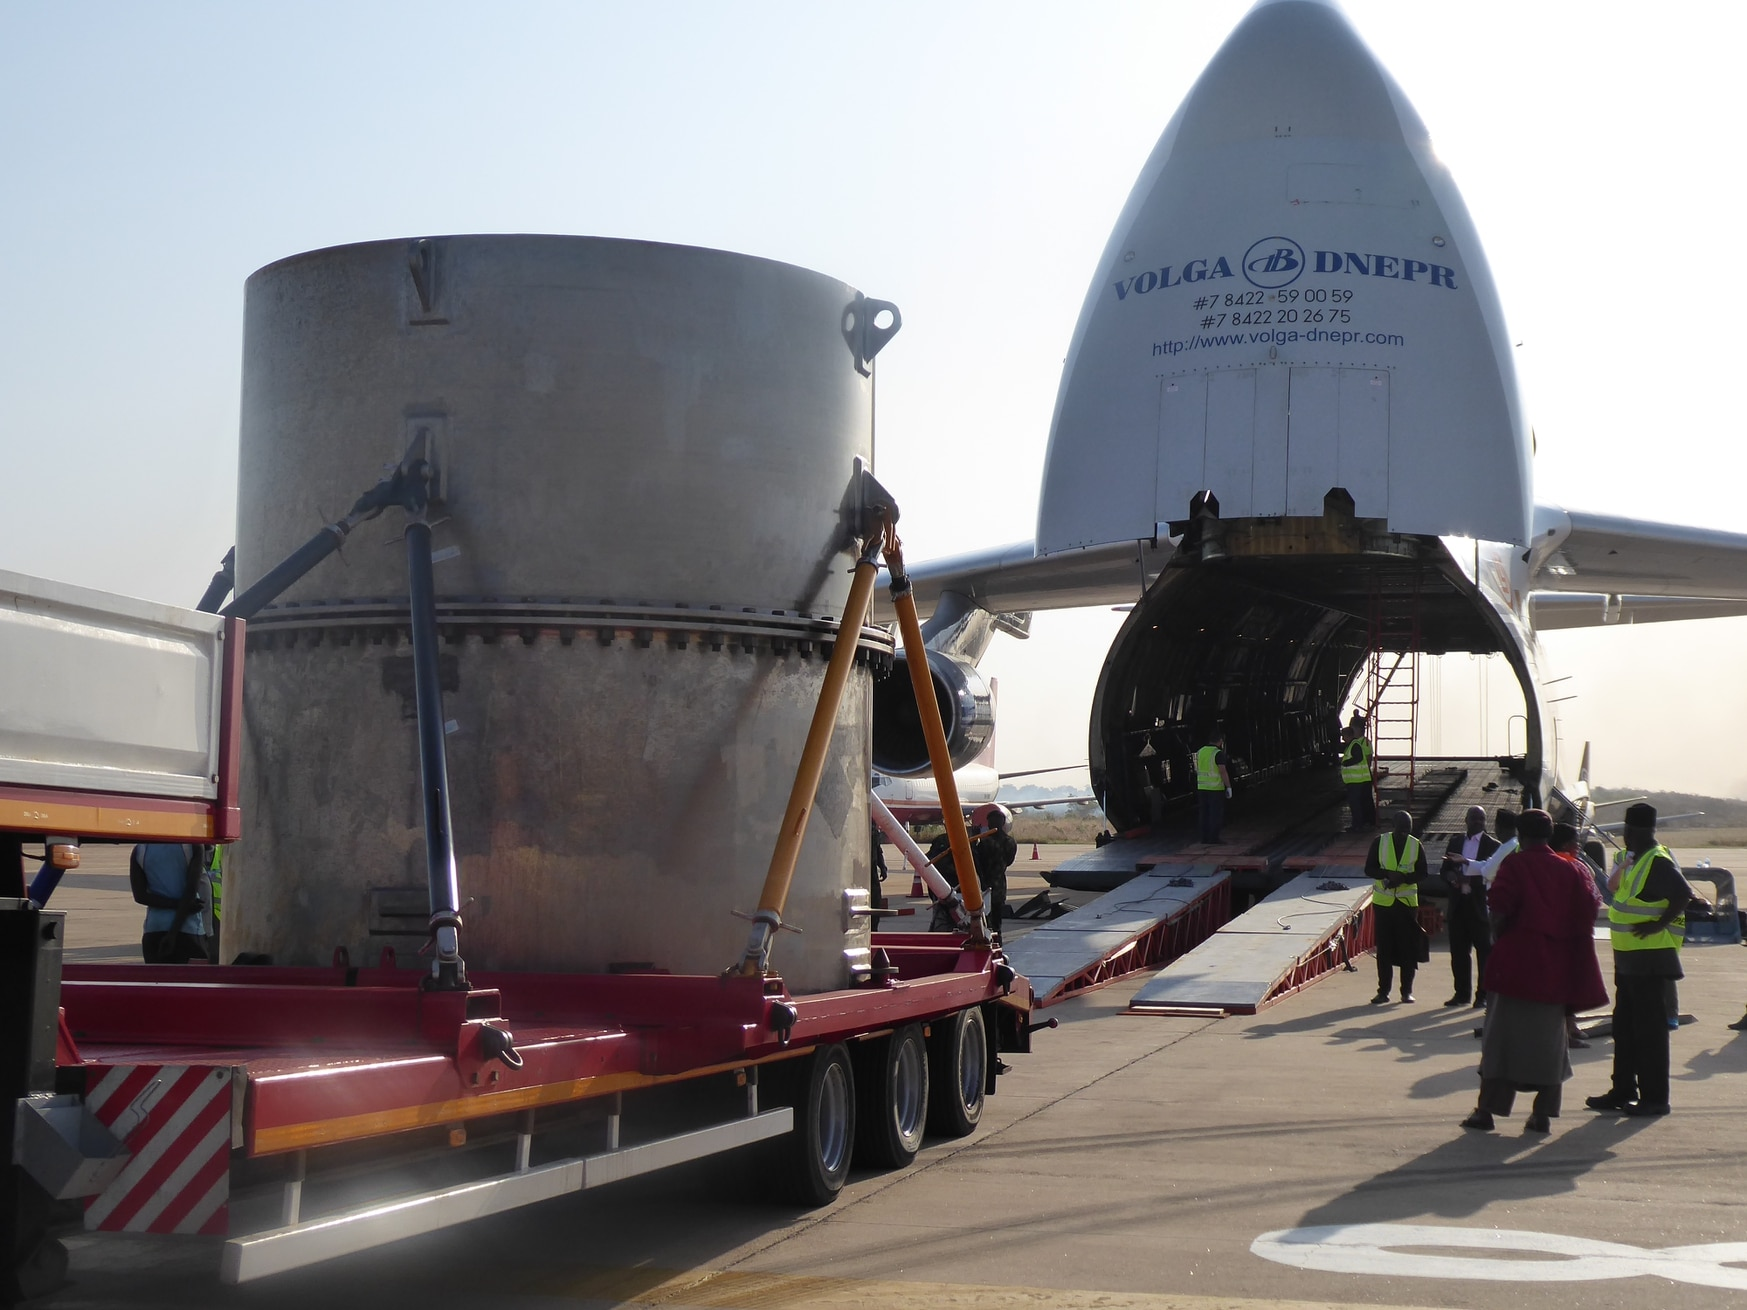 The TUK-145/C, carrying a load of highly enriched uranium from the Nigerian reactor, is loaded onto a plane headed for its final destination: China. (U.S. National Nuclear Security Administration)